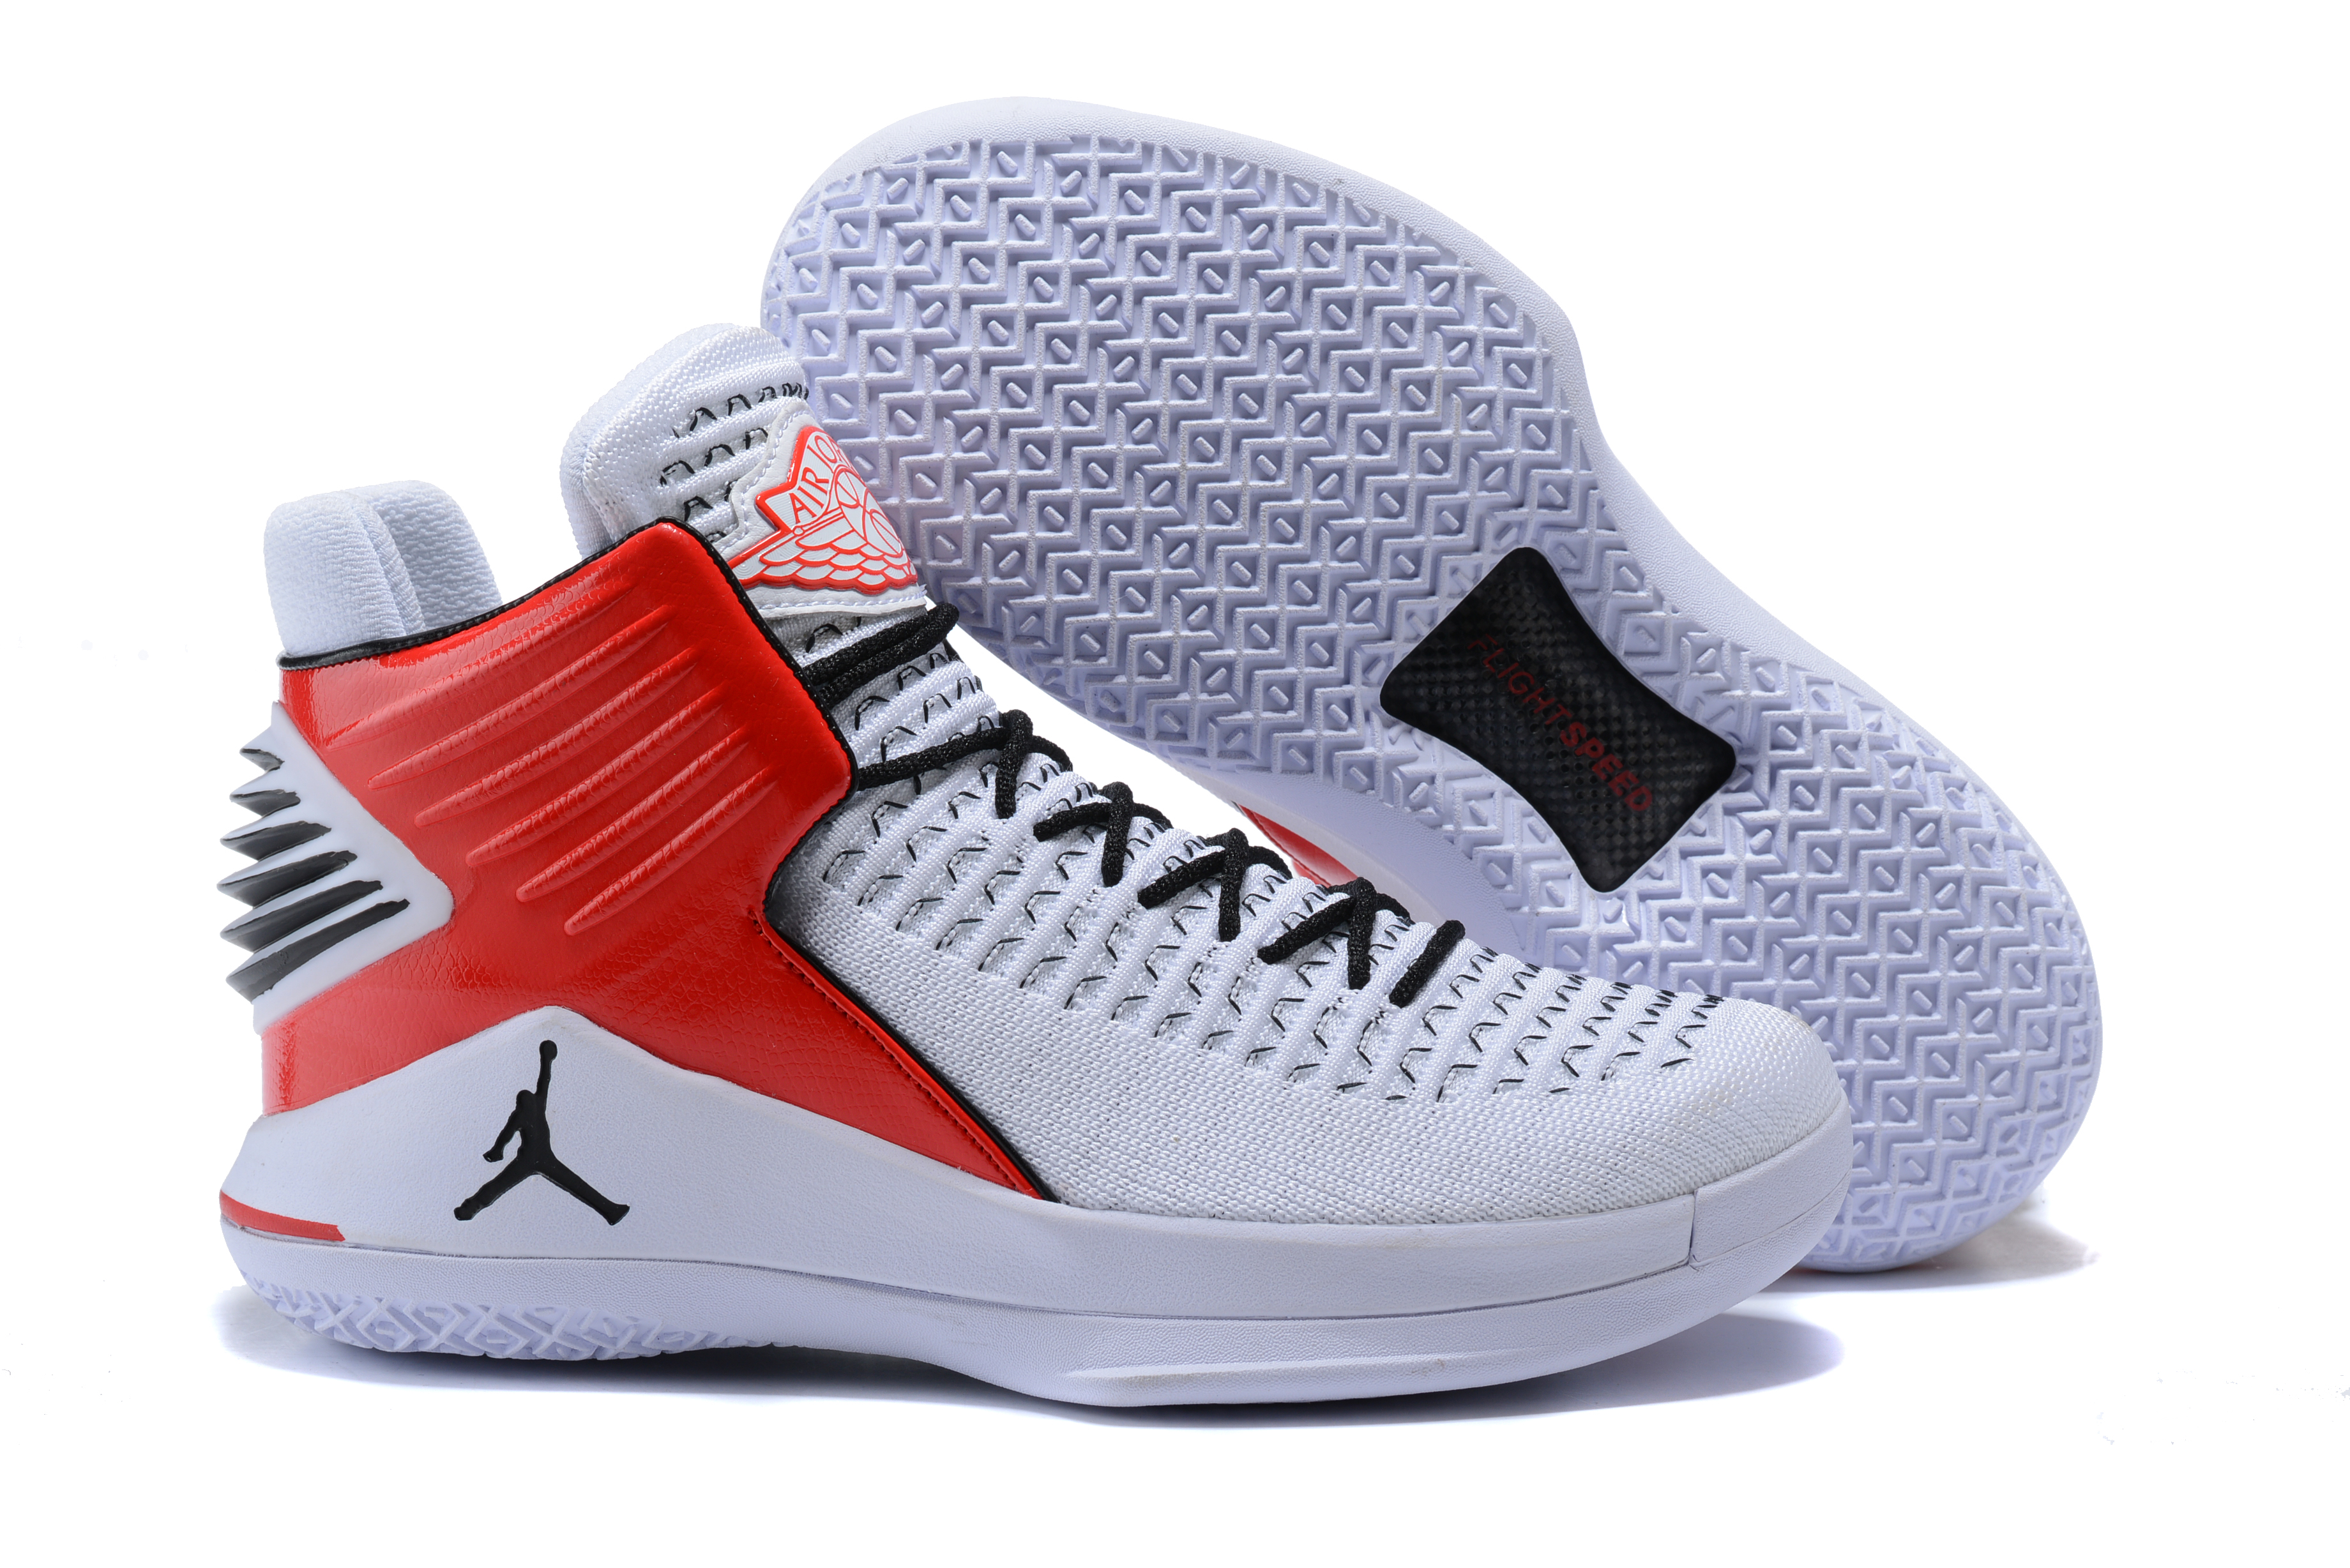 Original Air Jordan 32 White Red Shoes